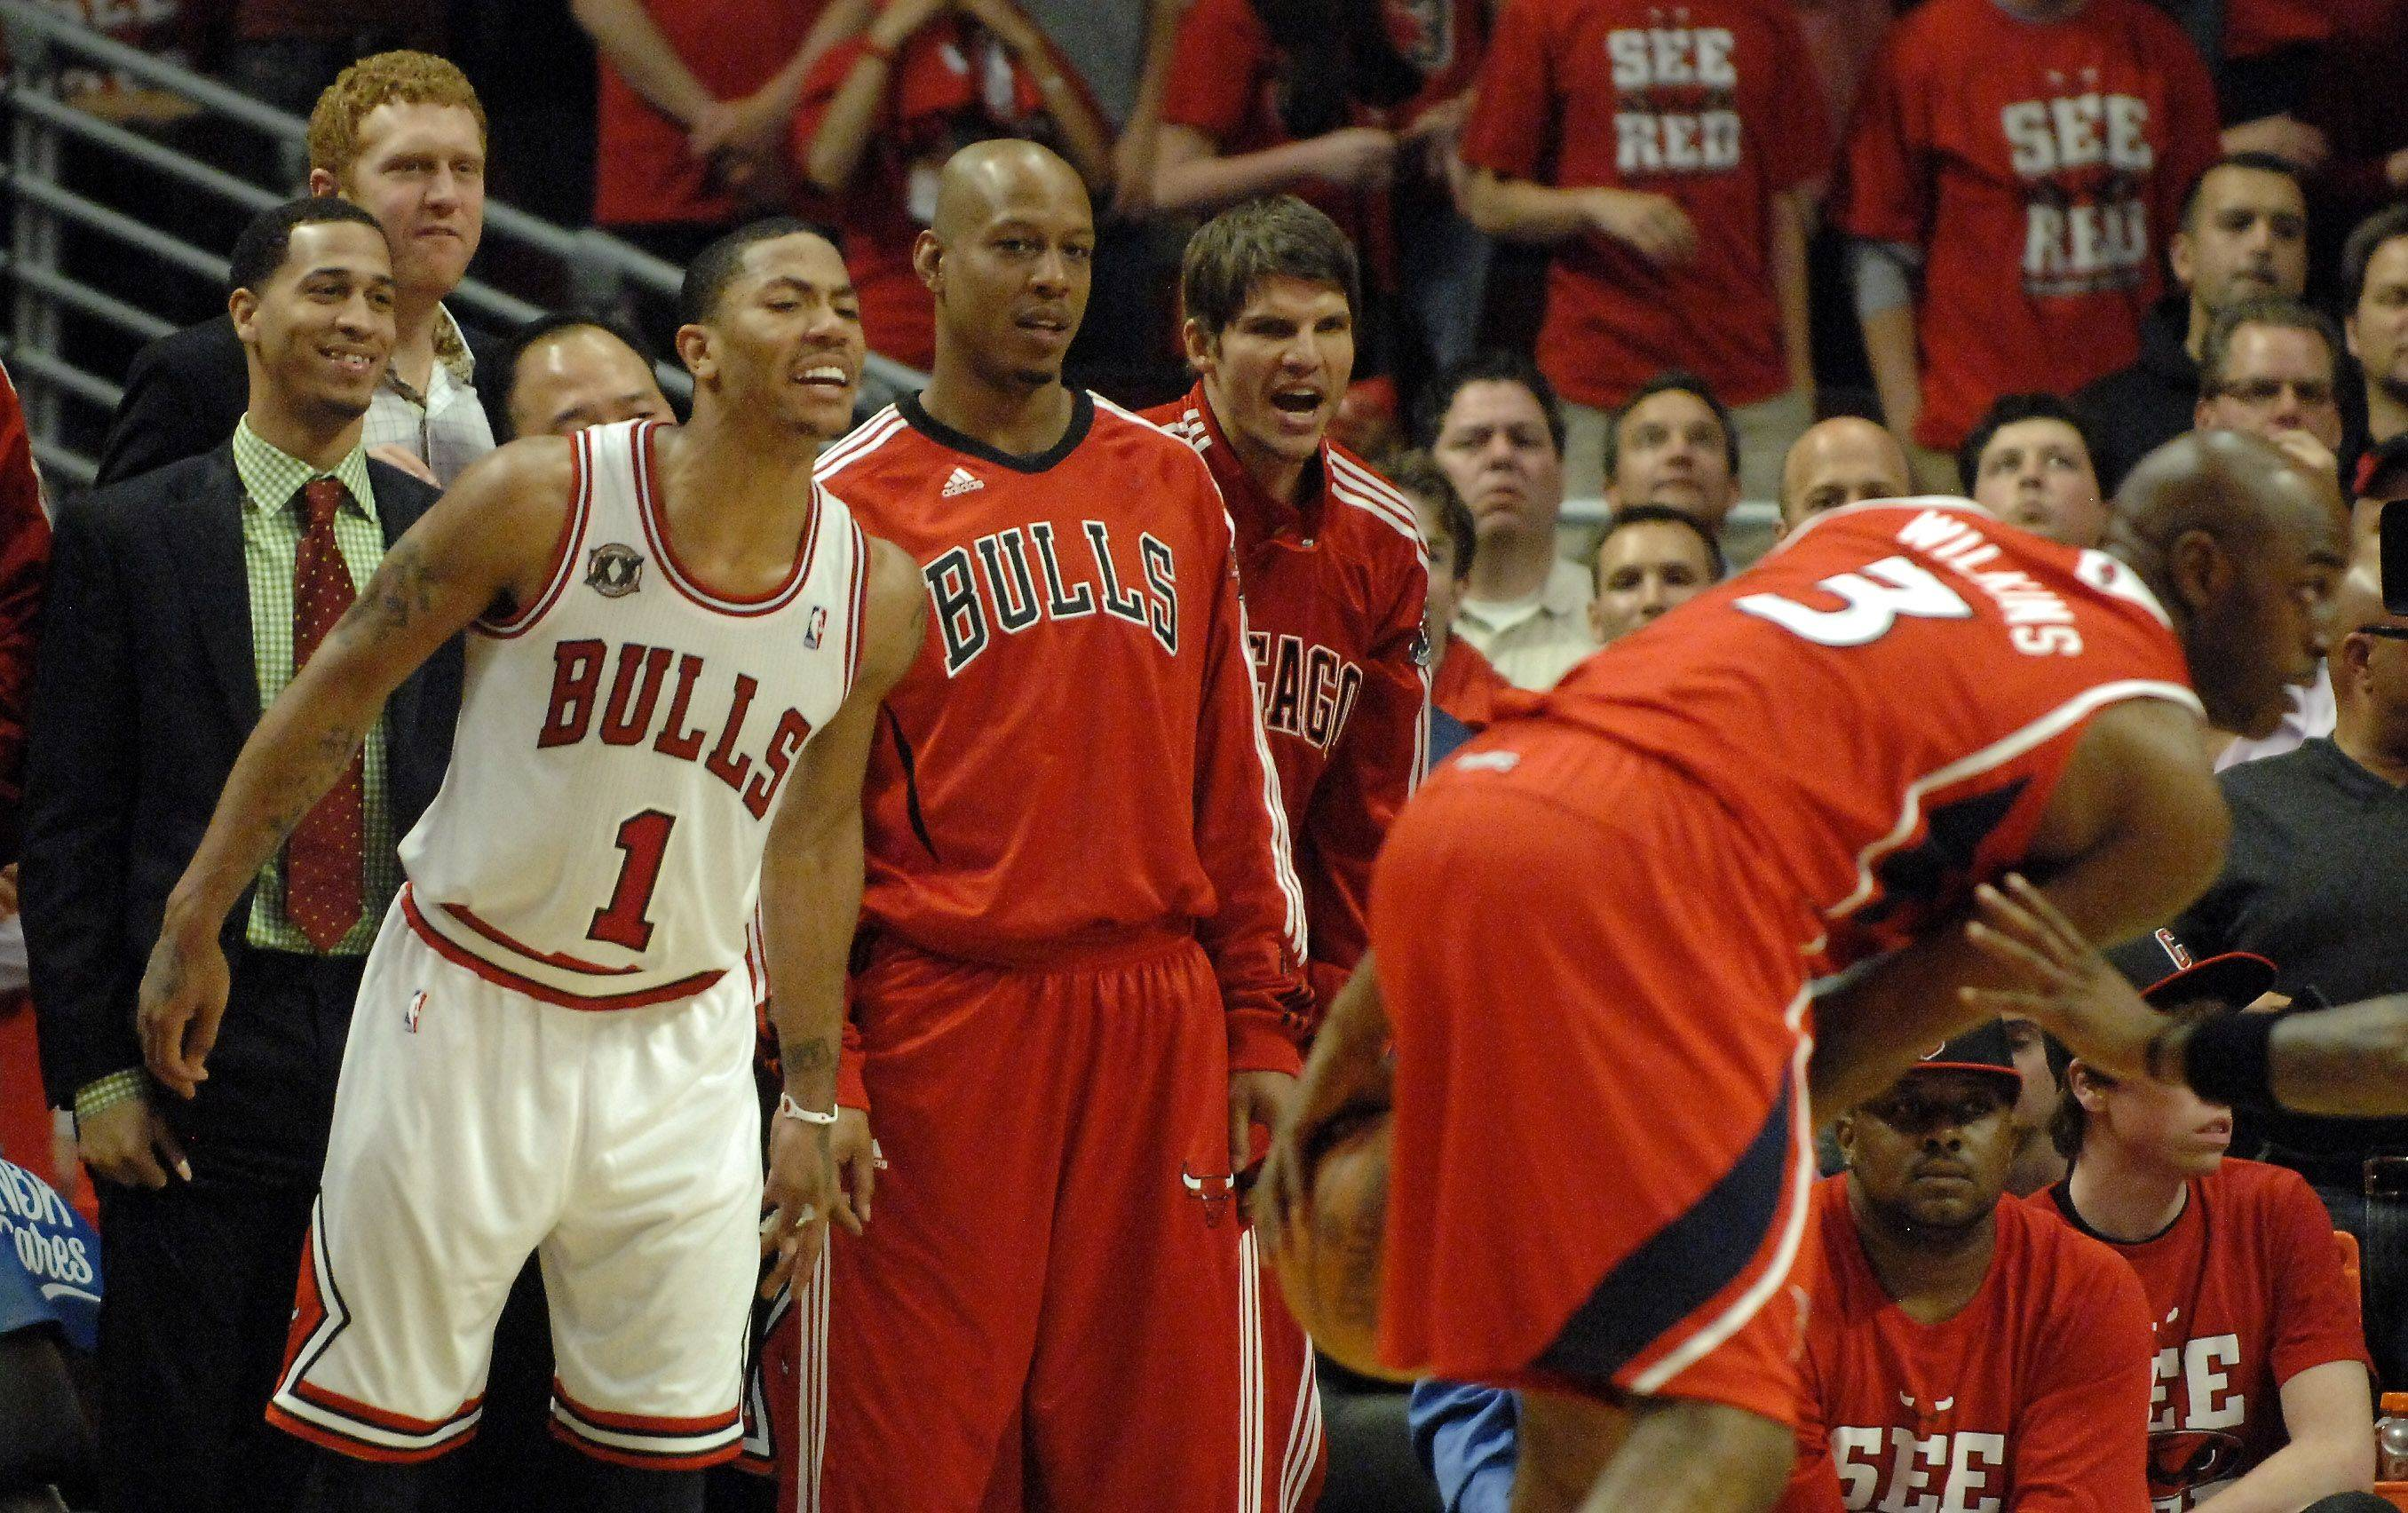 The Bulls' Derrick Rose and his teammates cheer from the bench in the final minute of game 5 against the Atlanta Hawks in Chicago Tuesday.